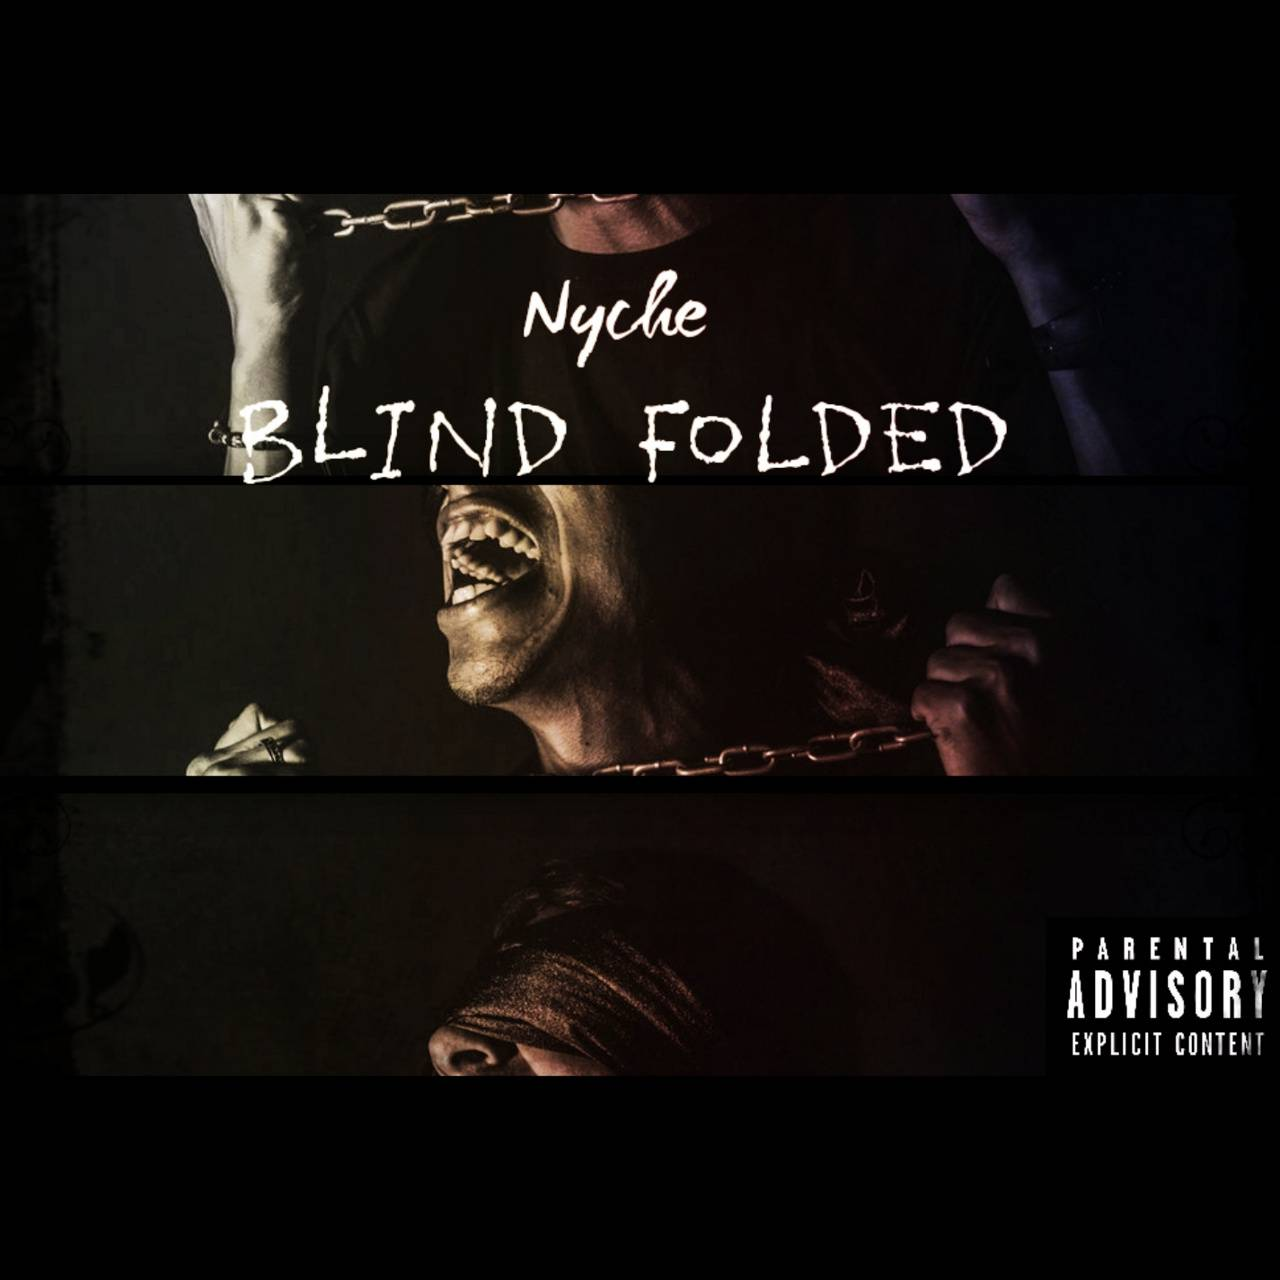 NYCHE BLIND FOLDED